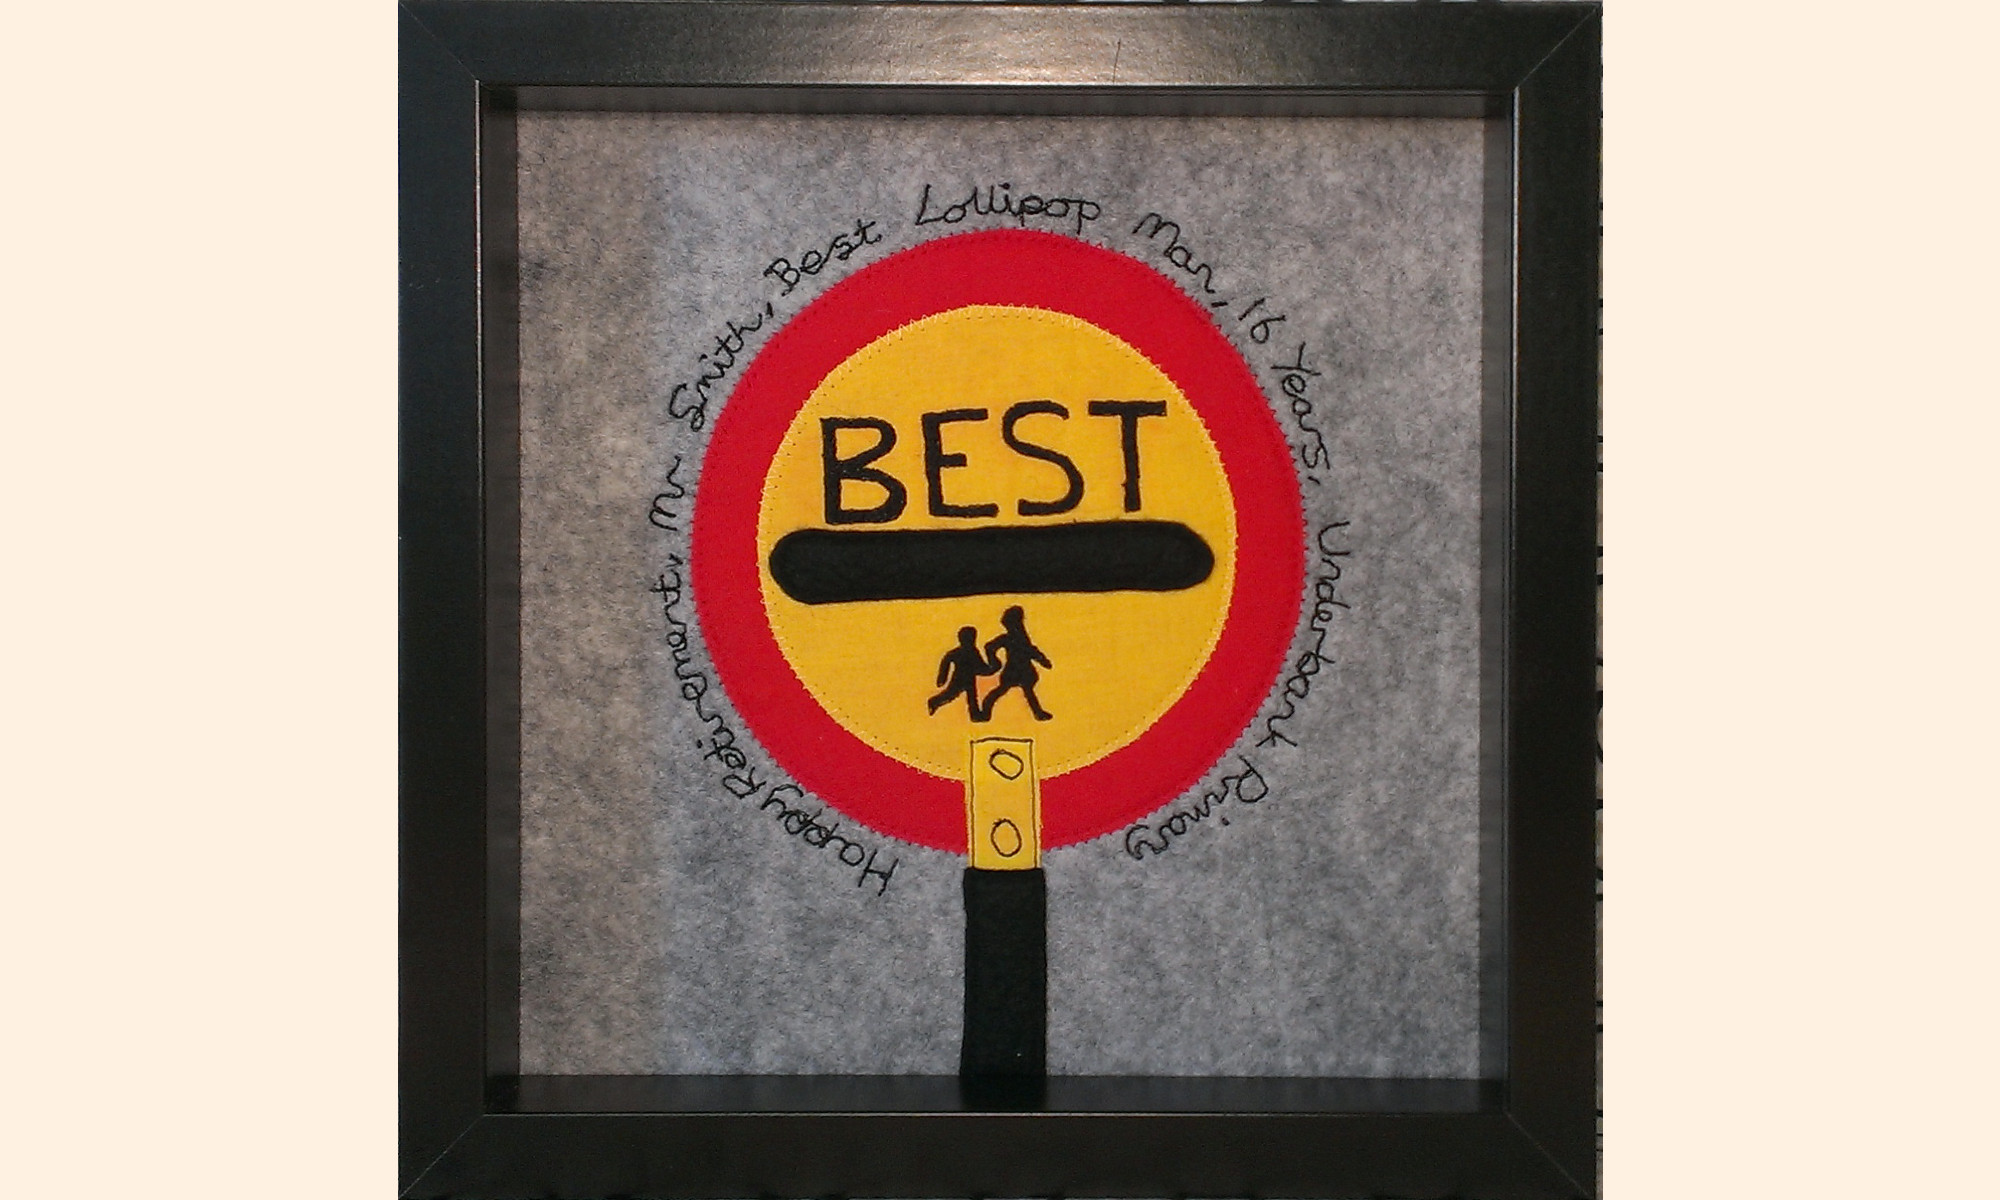 Framed picture, School crossing patrol lollipop with Best written on it.